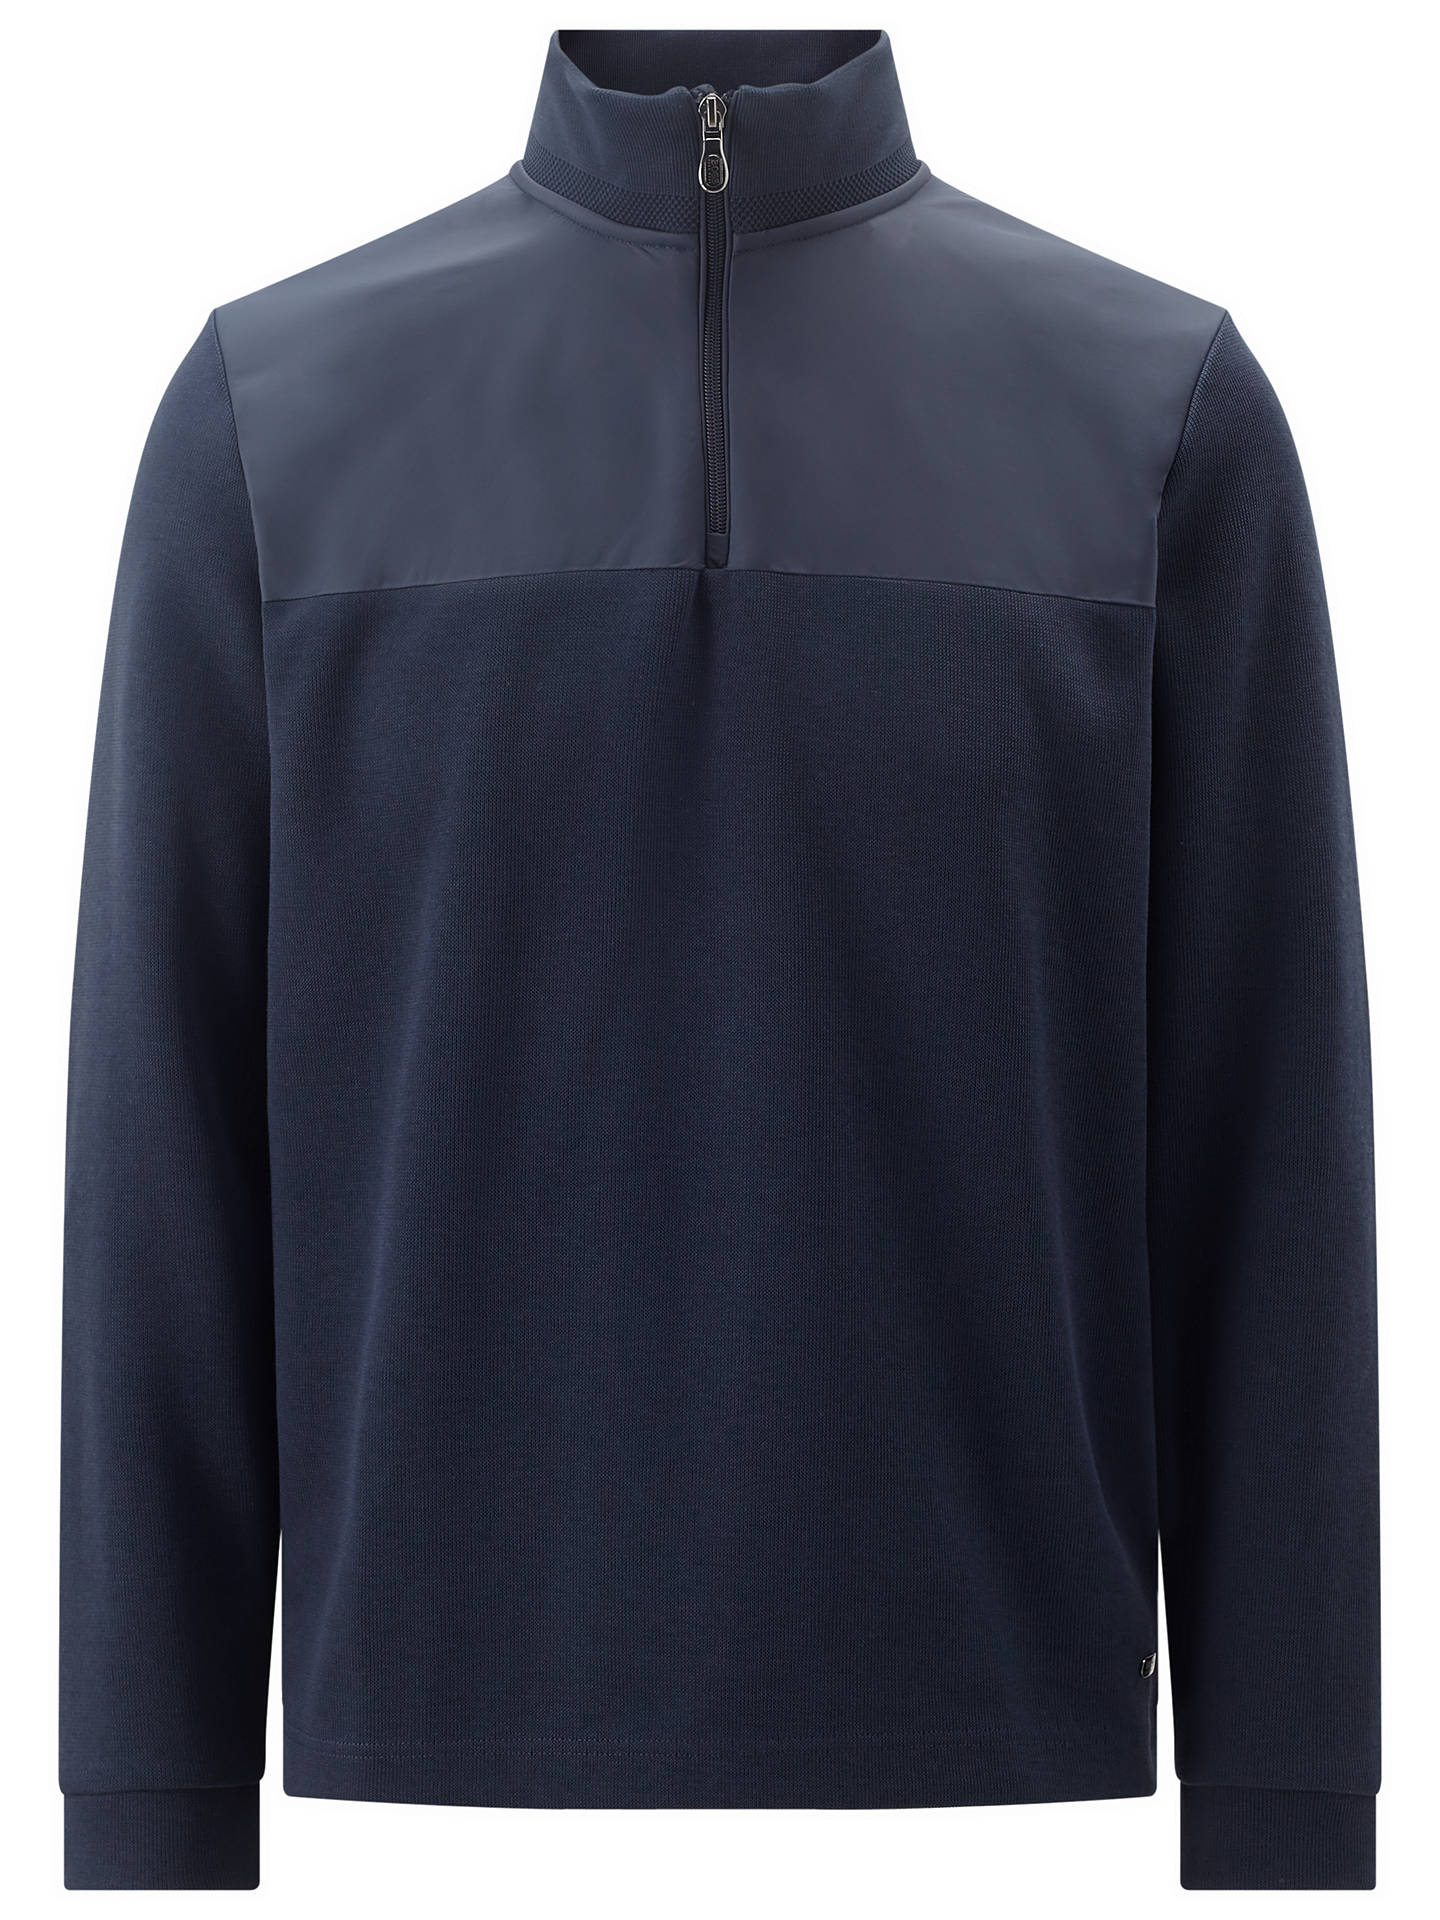 BuyBOSS Green C-Piceno Jumper, Navy, S Online at johnlewis.com